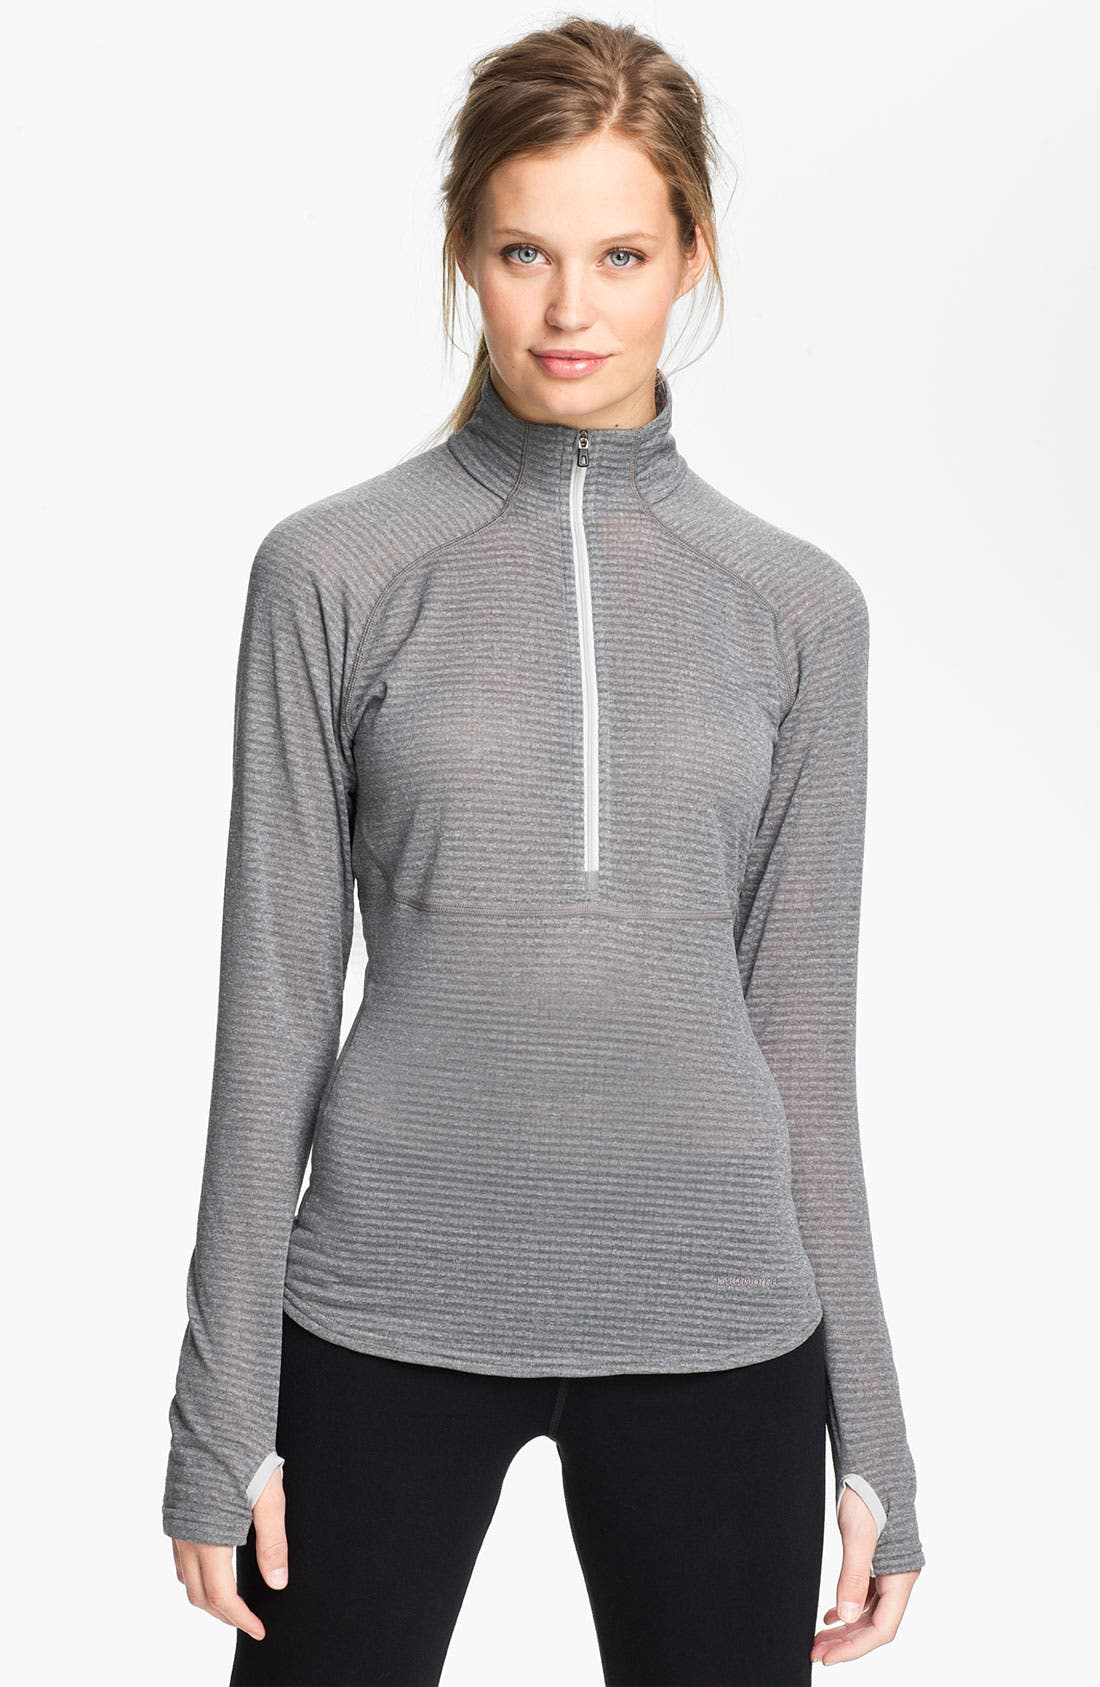 Main Image - Patagonia 'Capilene 4' Expedition Weight Base Layer Zip Neck Top